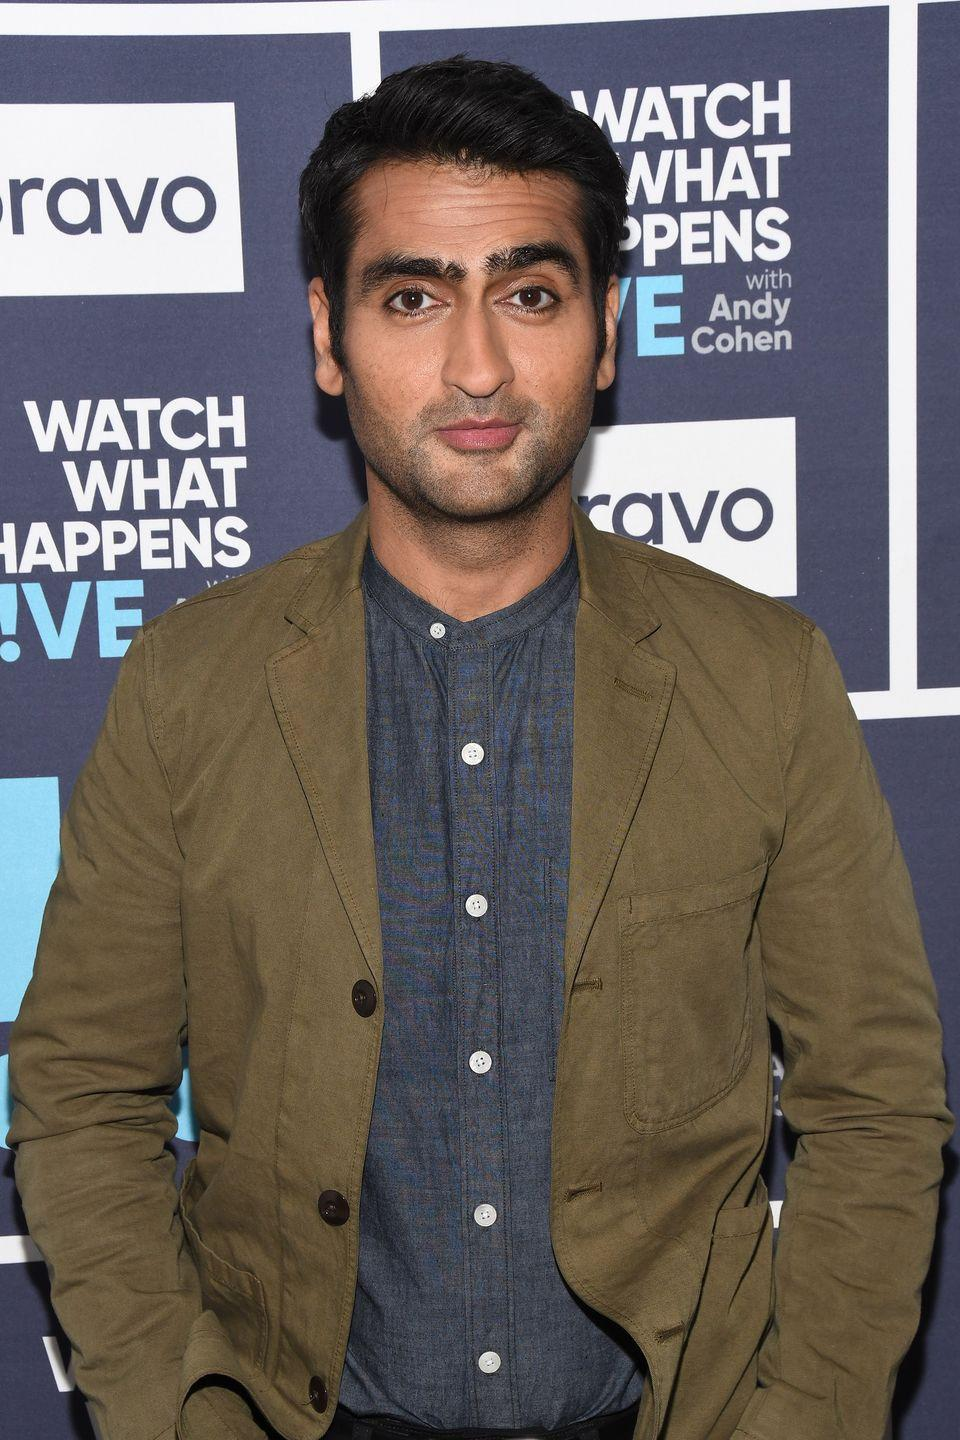 <p>In 2017, Kumail Nanjiani and his wife, Emily V. Gordon, debuted the film they co-wrote, <em>The Big Sick</em>, which was based on their relationship and starred Nanjiani. The actor was also starring in the hit HBO show <em>Silicon Valley.</em></p>